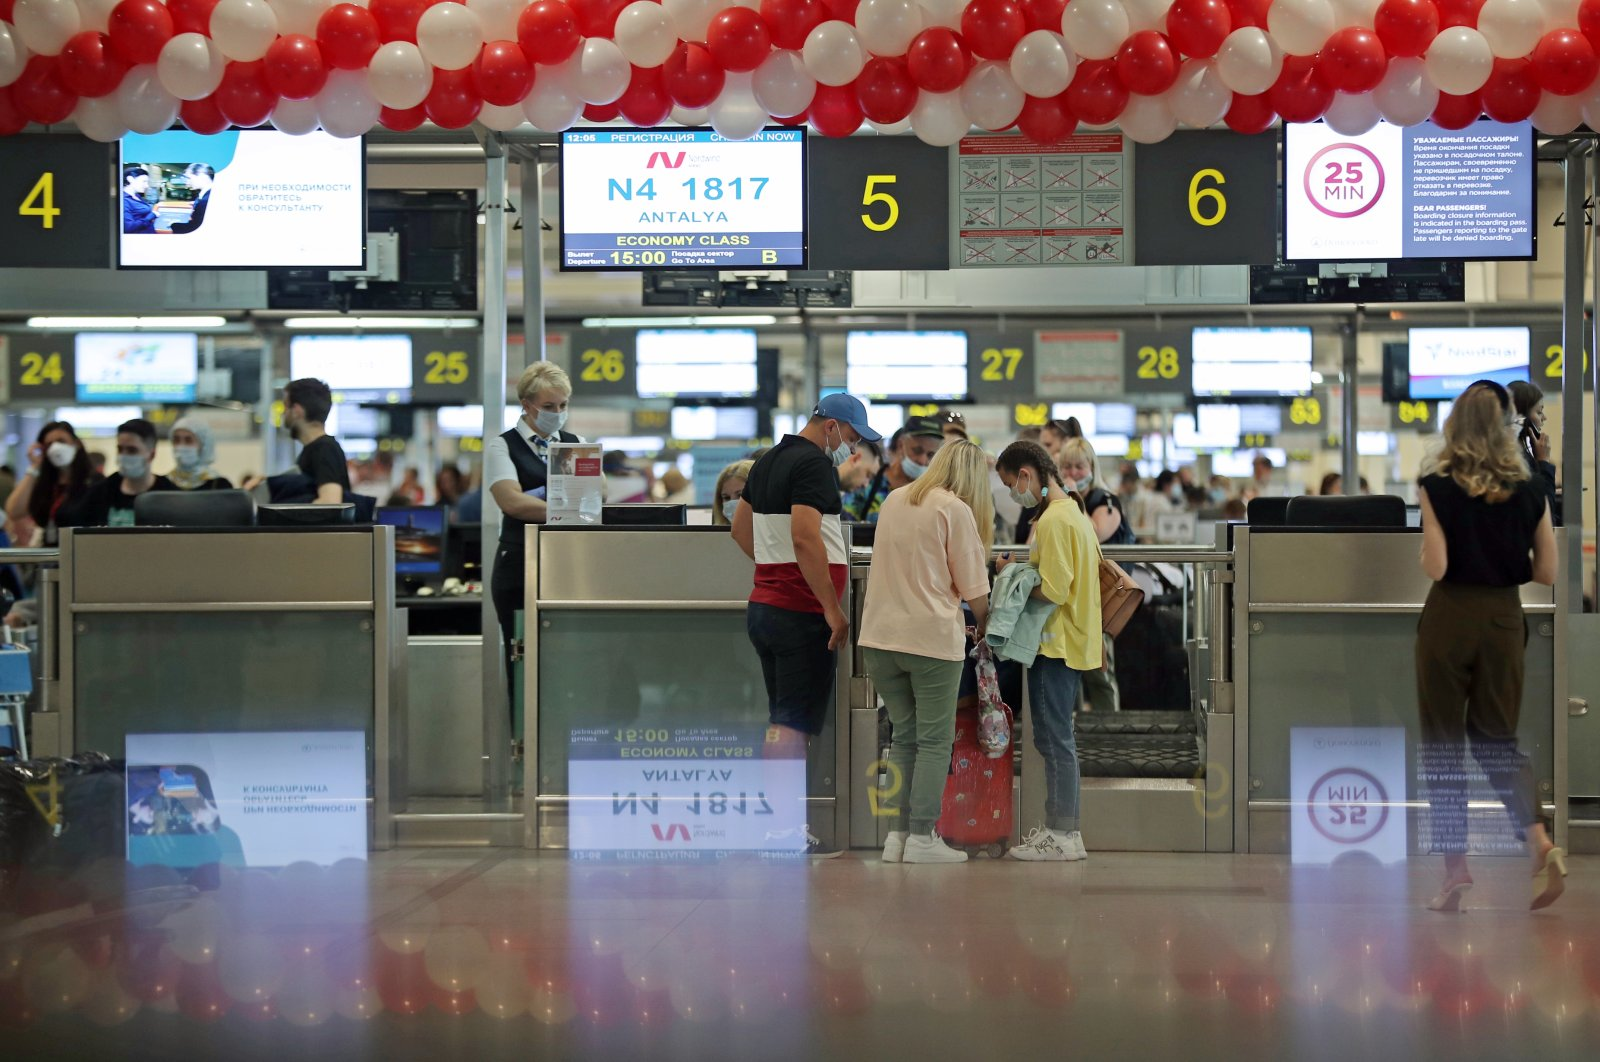 Passengers at Domodedovo International Airport, which has resumed flights to Turkey's resort cities of Antalya, Bodrum, and Dalaman after a pause, Moscow, Russia, Aug.10, 2020. (GettyImages)